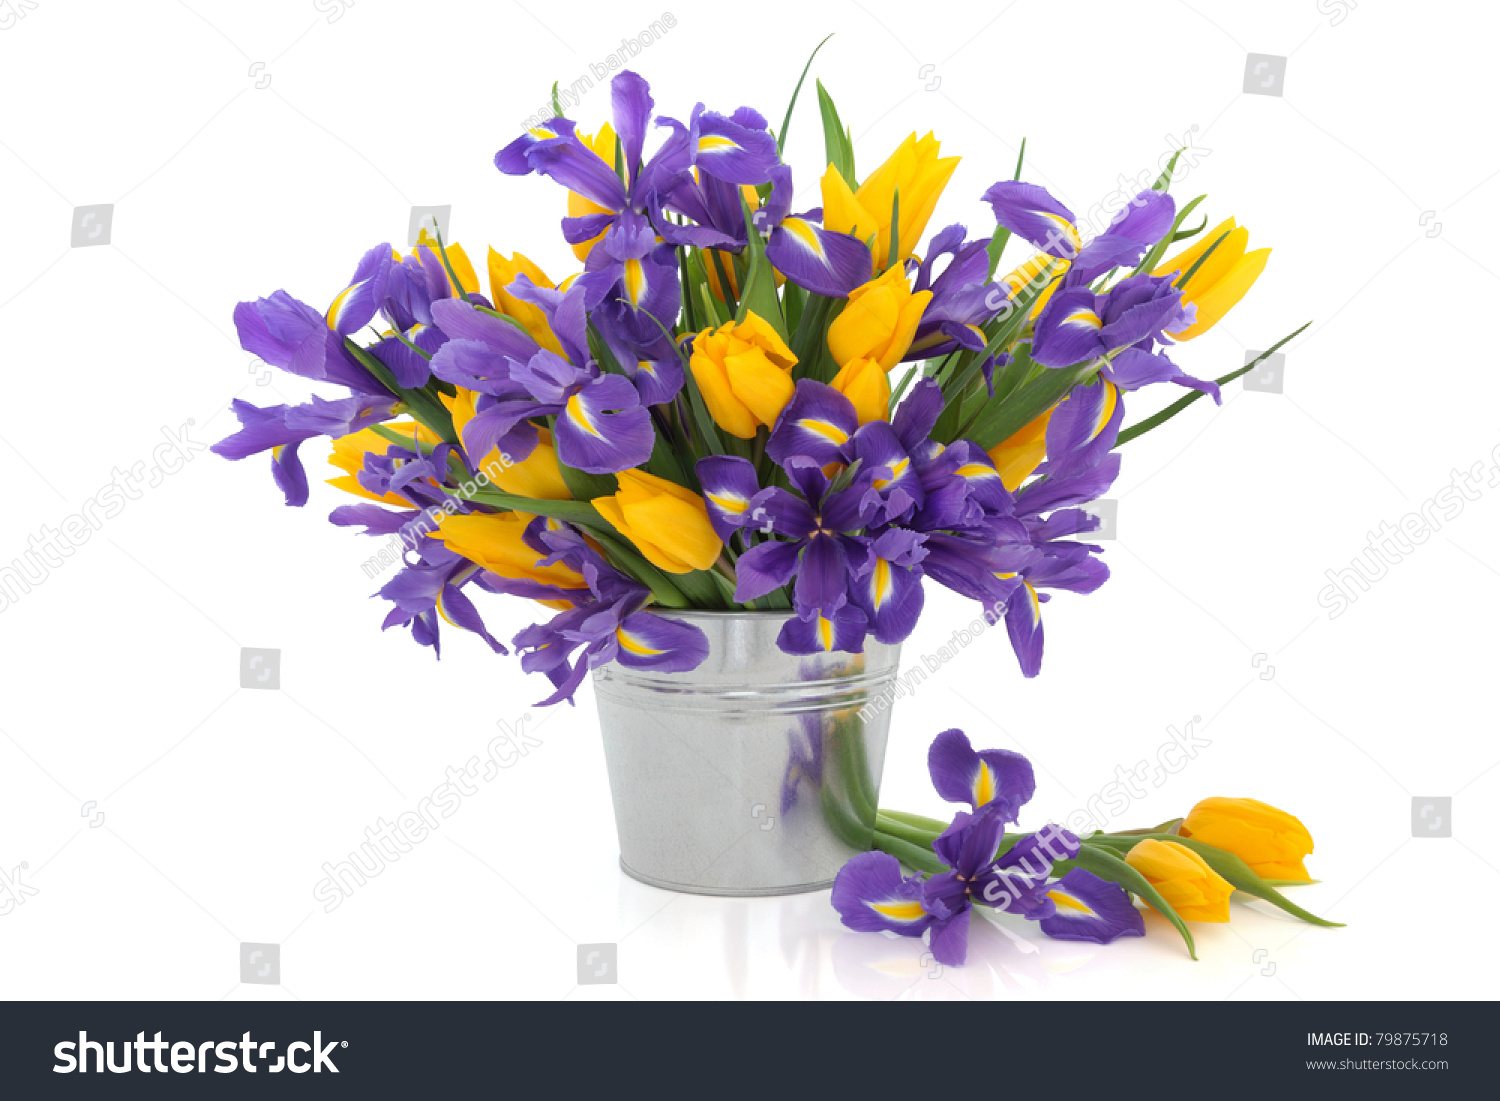 Purple Iris And Yellow Tulip Flower Arrangement In A Distressed